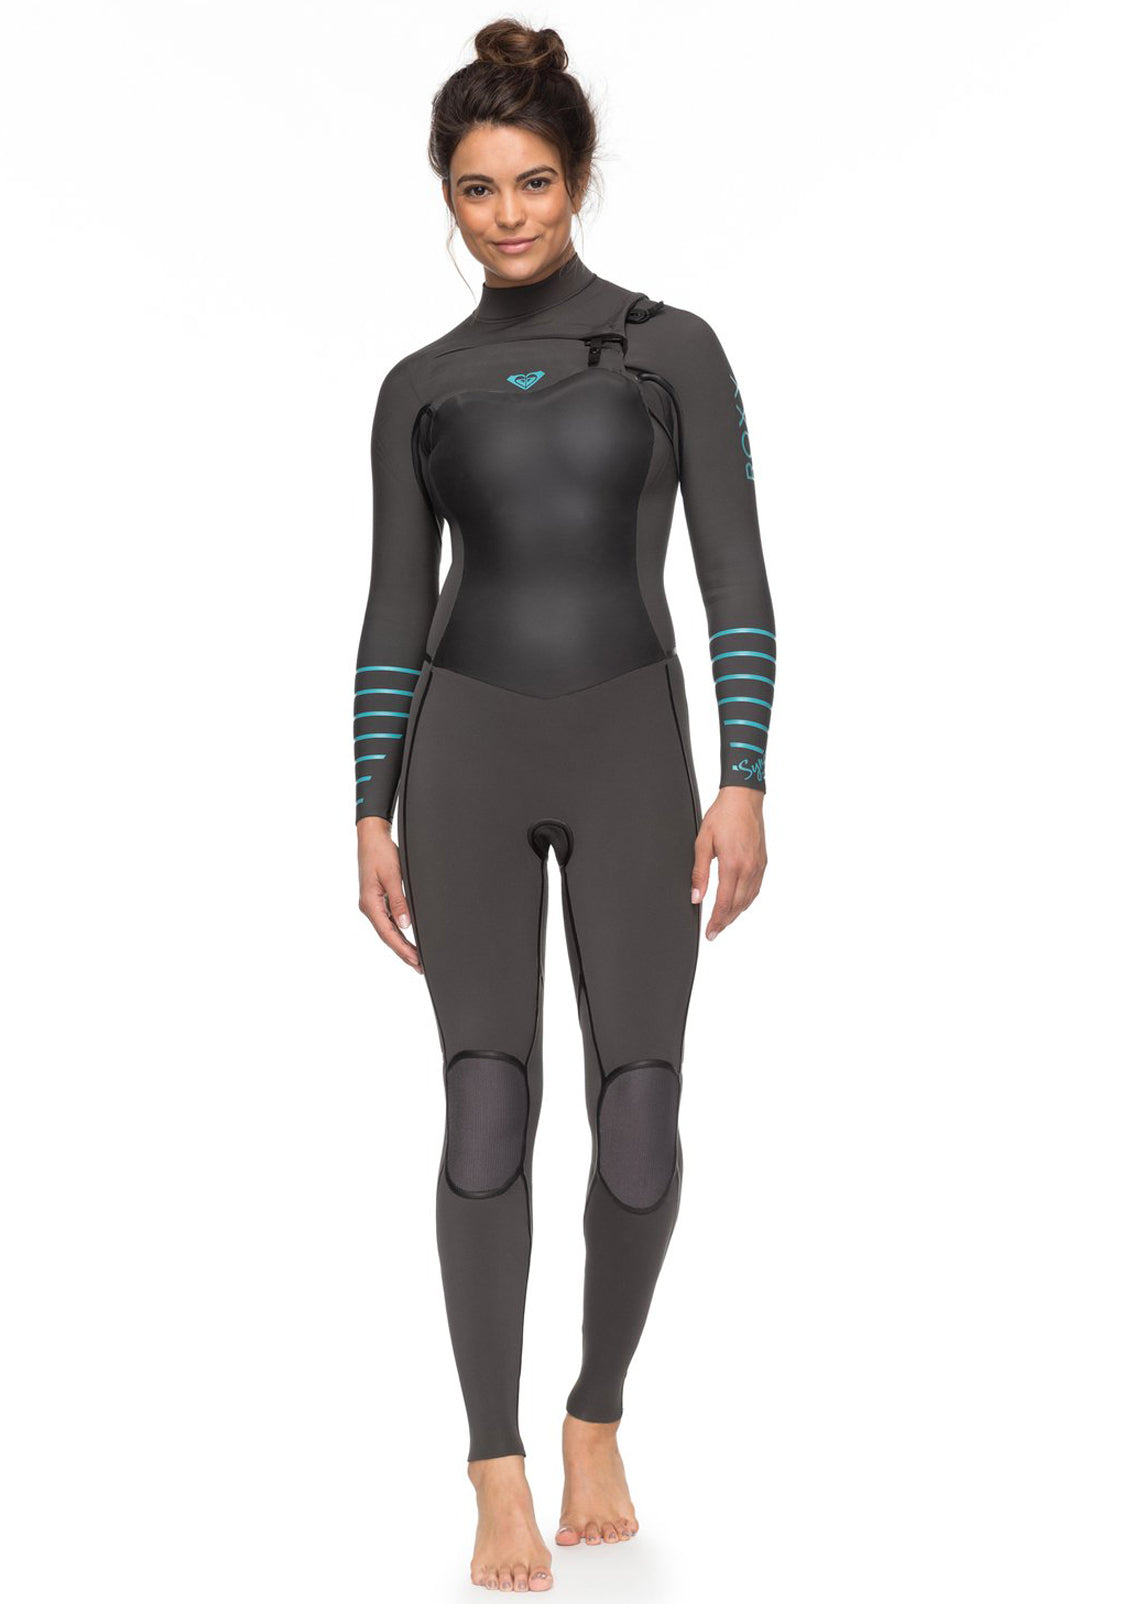 Womens 3/2 Syncro Plus Chest Zip Wetsuit